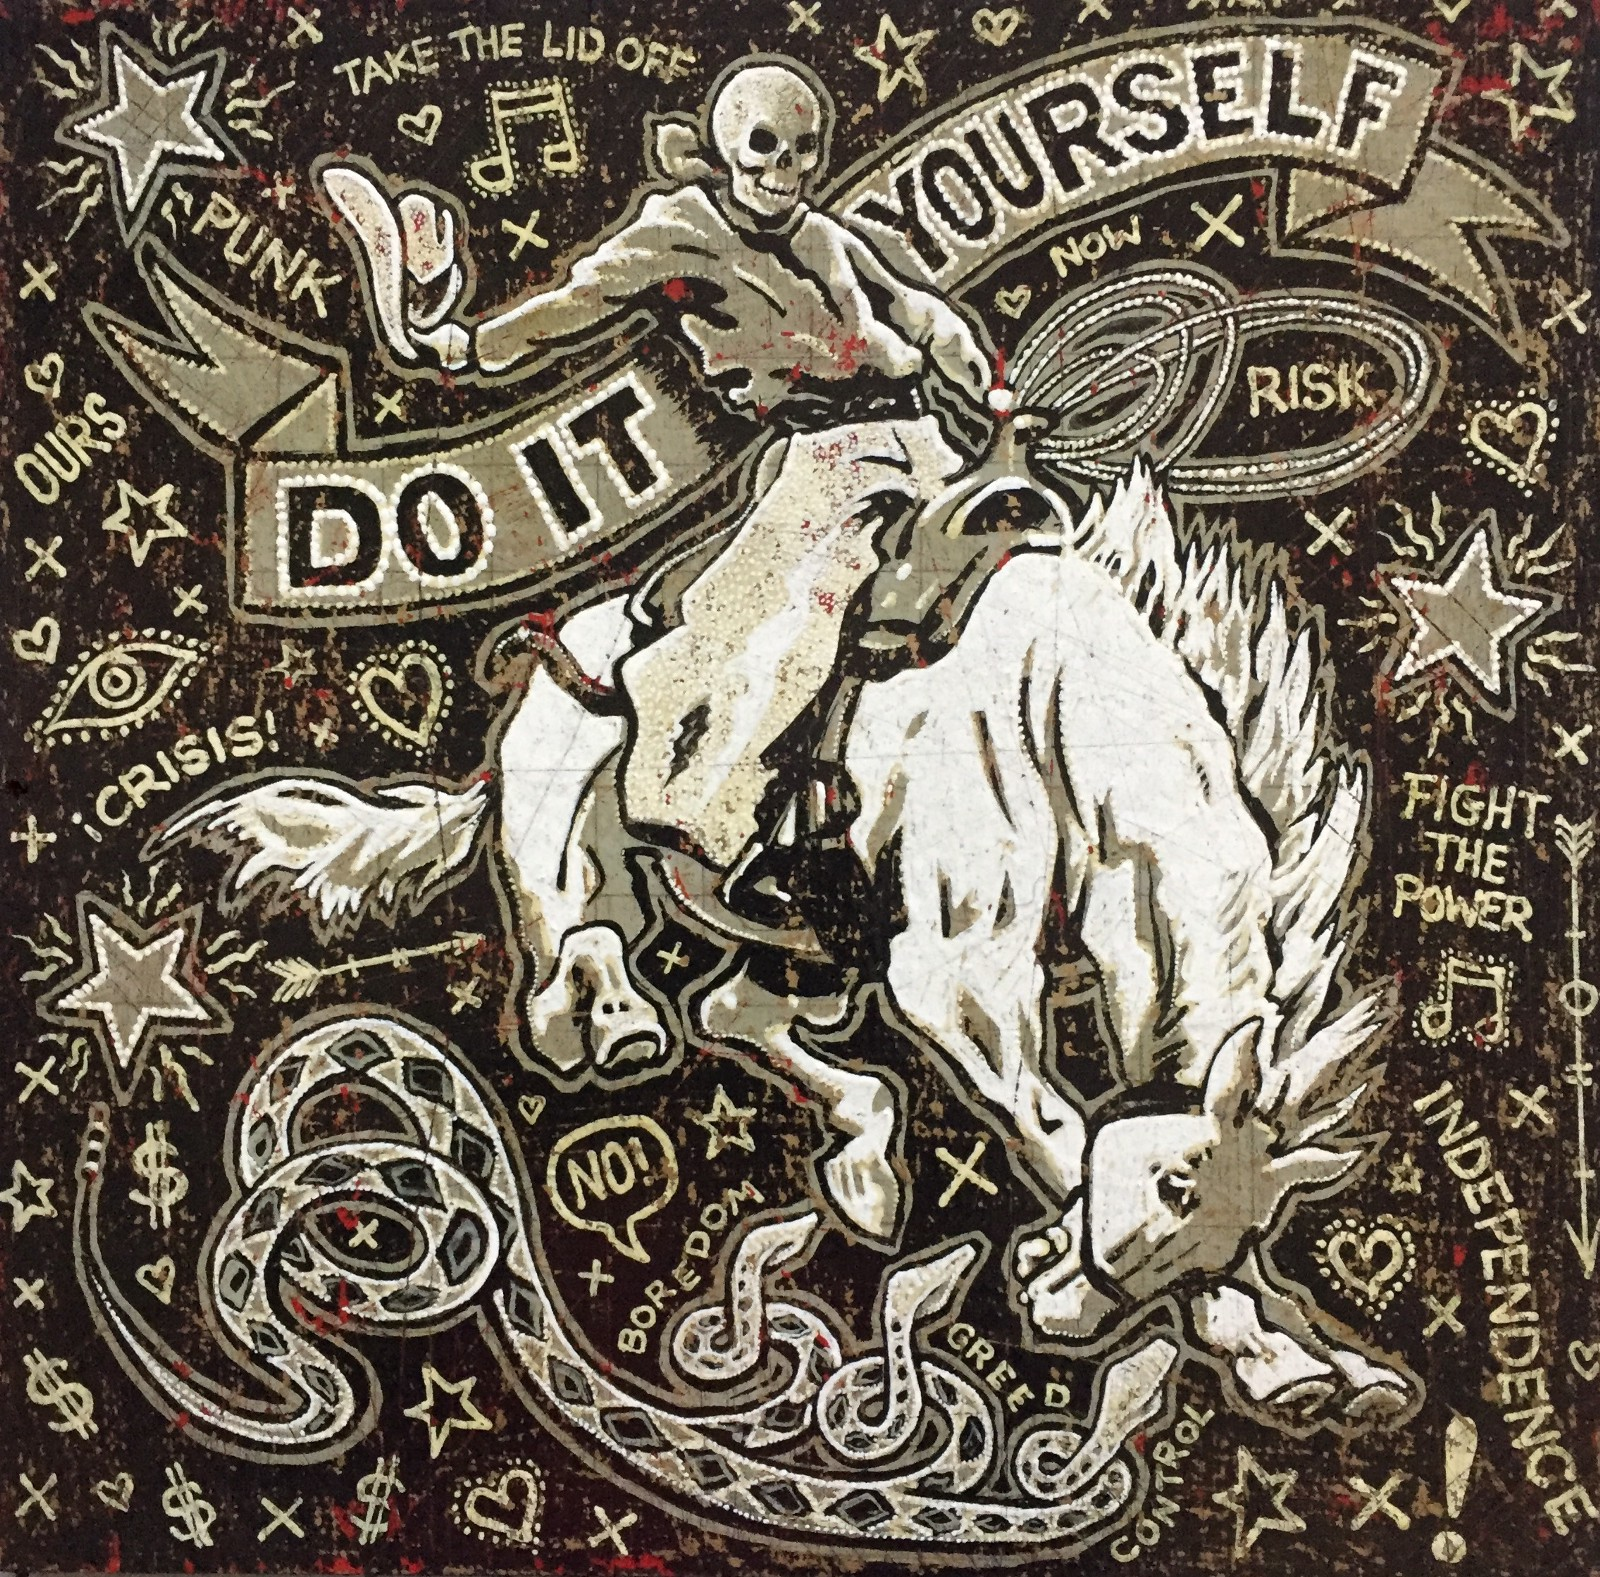 Diy it all started with spiral scratch do it yourself the diy it all started with spiral scratch a piece of jon langford art solutioingenieria Image collections